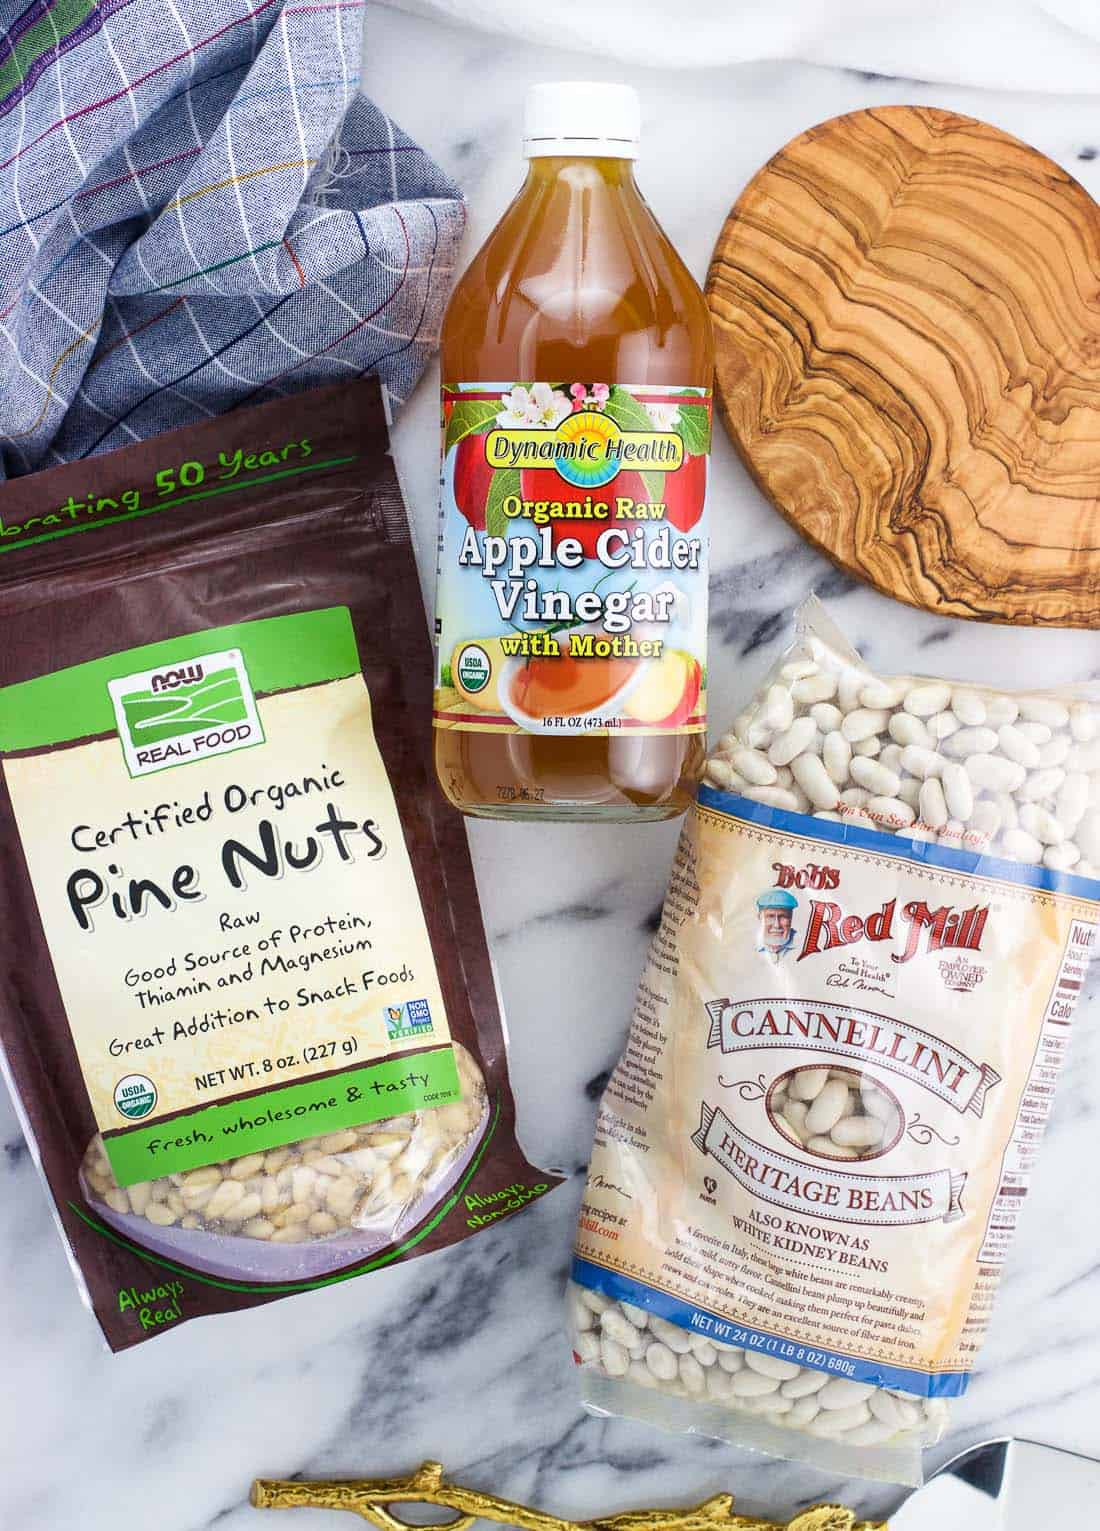 An overhead shot of ingredients from iHerb: pine nuts, apple cider vinegar, and cannellini beans